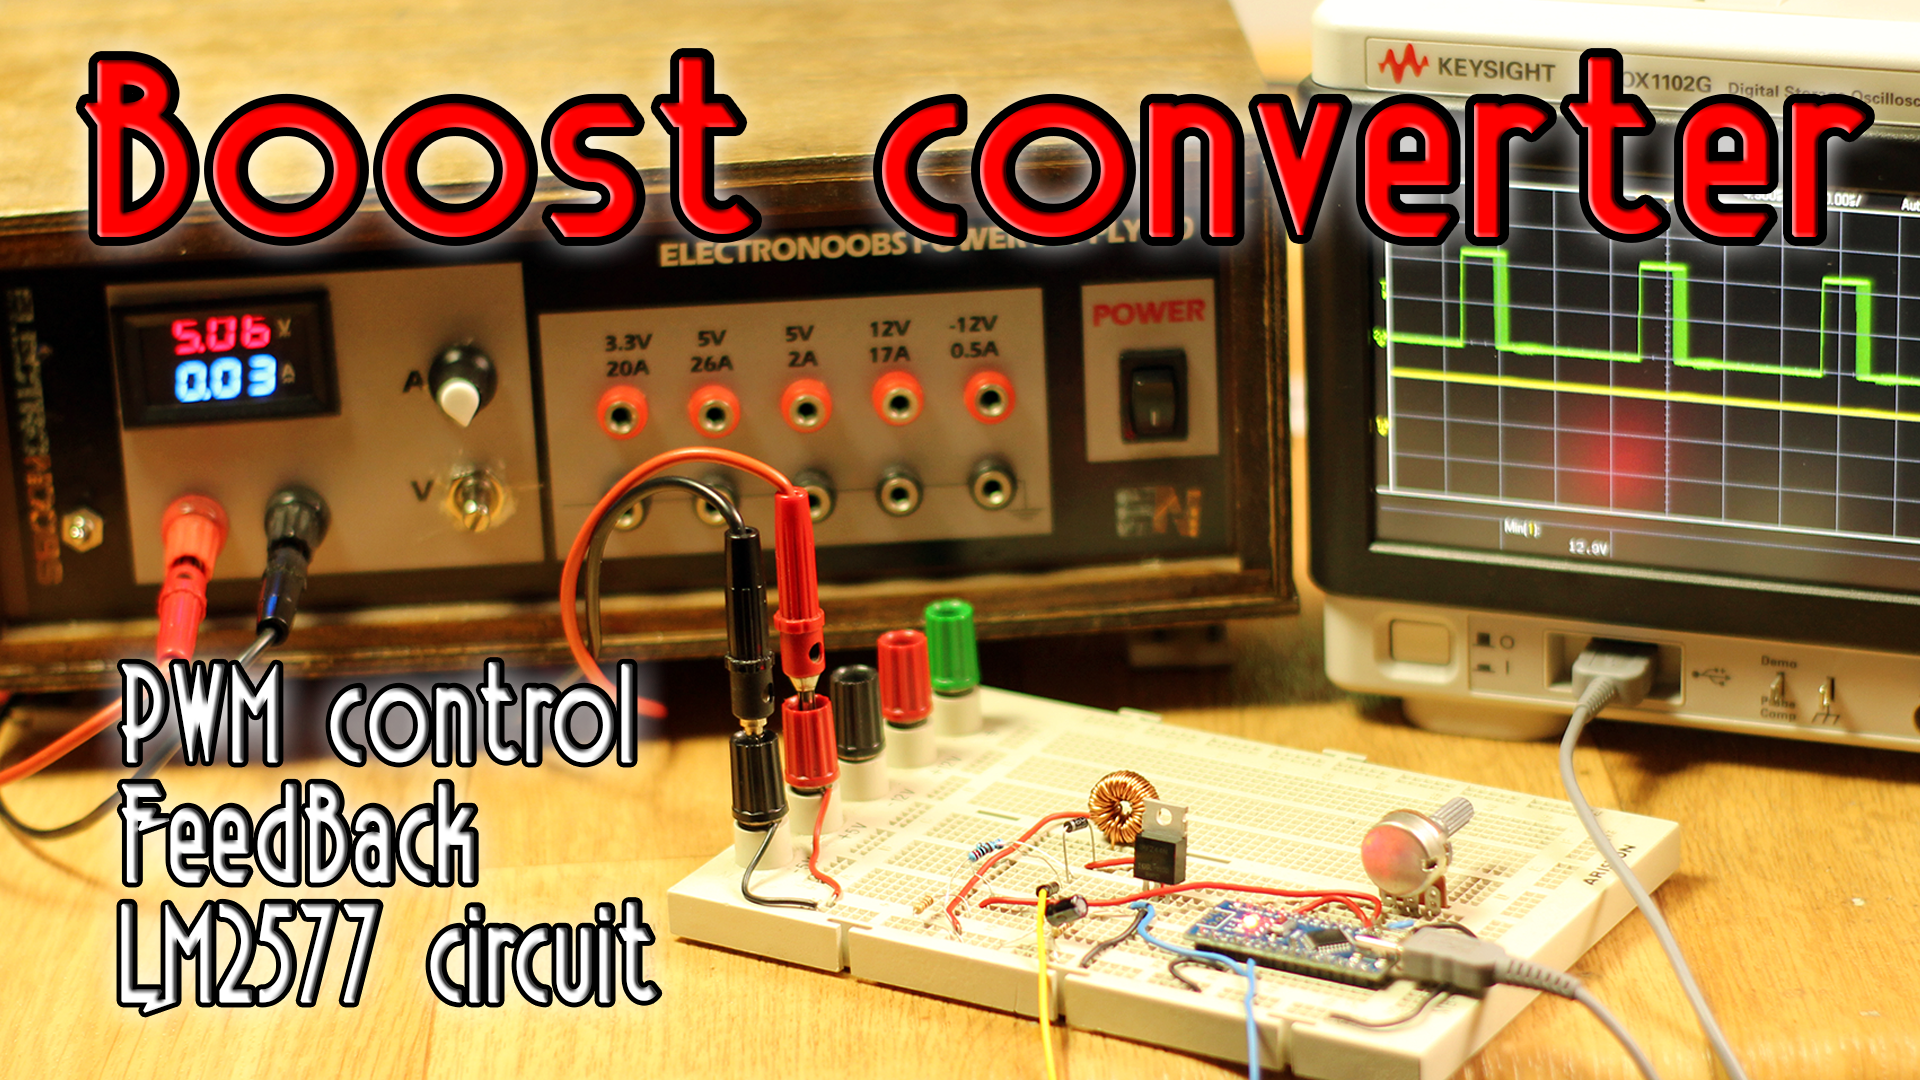 Circuits Tutorials Easy Basic Mill Etch Design Pcb Buck Boost With Output 12v Electronics Forum Projects And Lets Build A Converter We Already Seen The This Circuit Will Elevate Voltage See Arduino Feedback